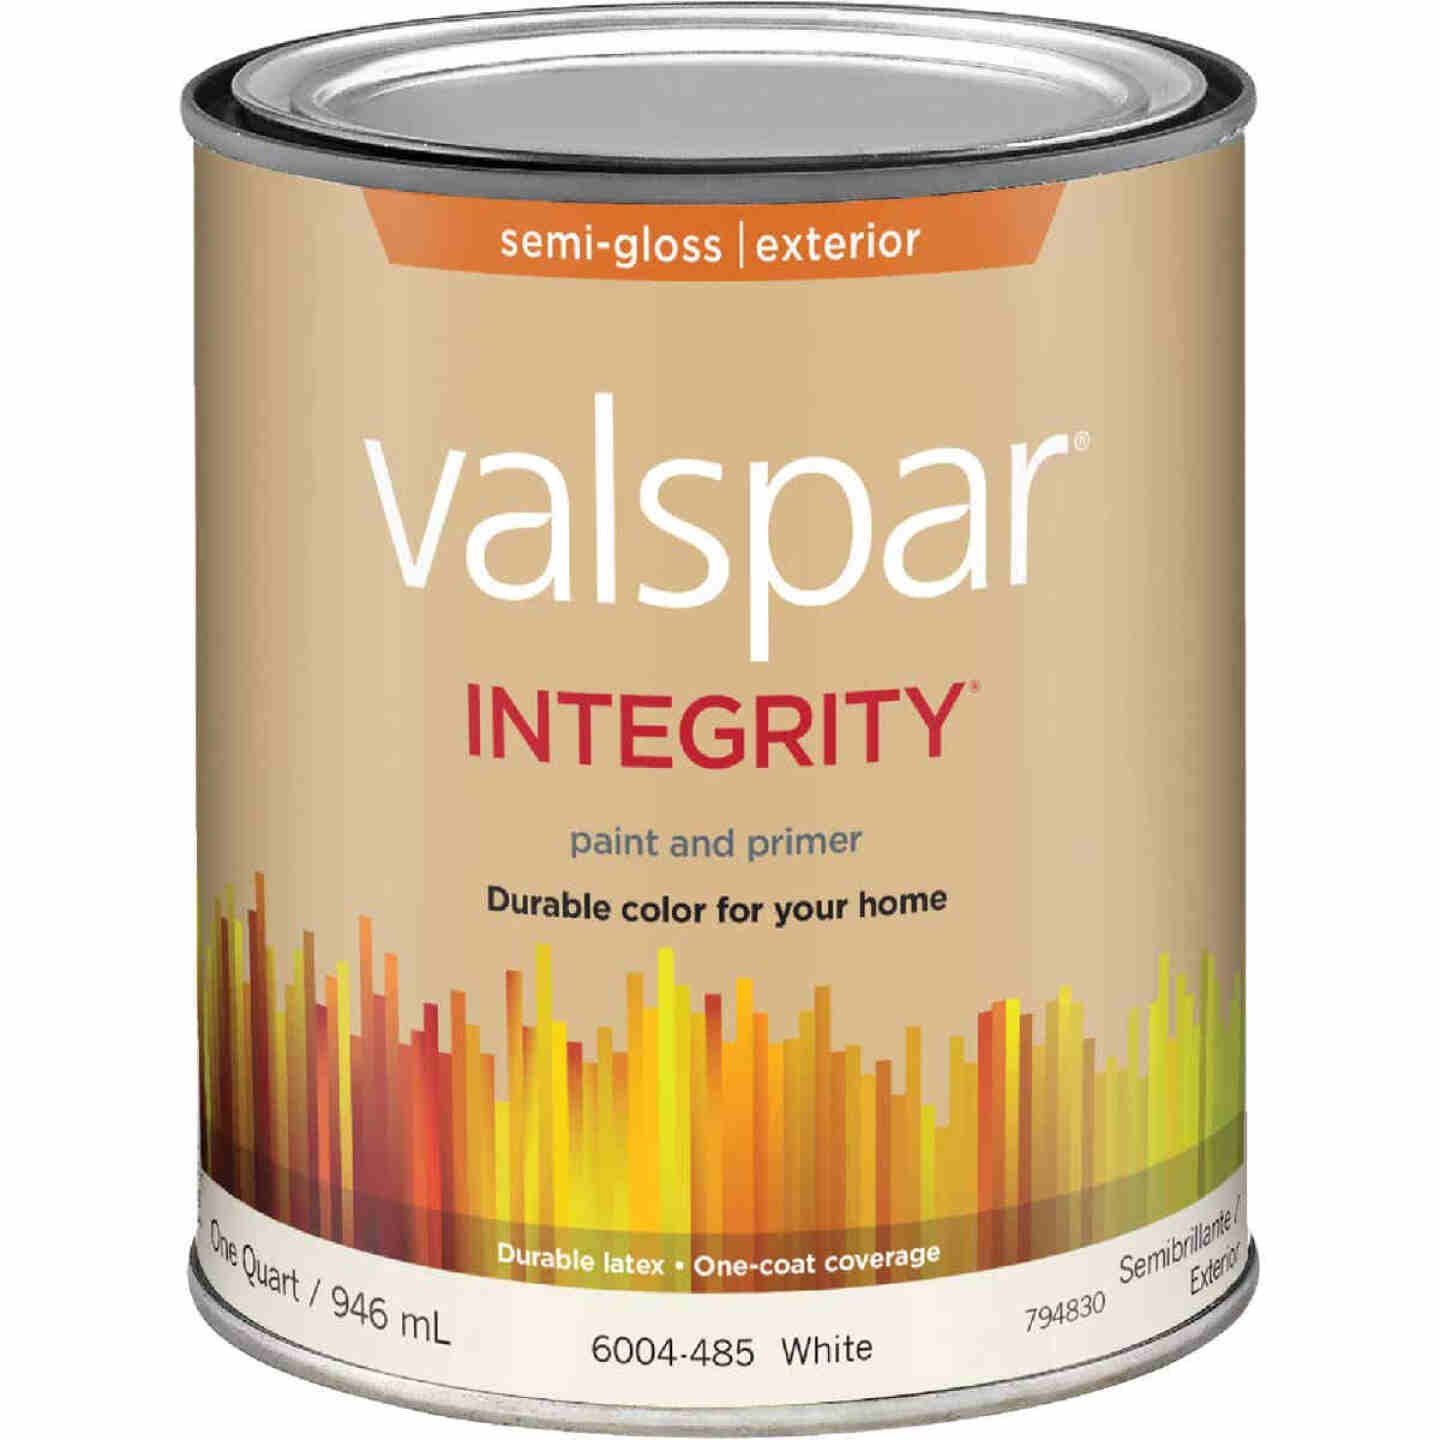 Valspar Integrity Latex Paint And Primer Semi-Gloss Exterior House Paint, White, 1 Qt. Image 1